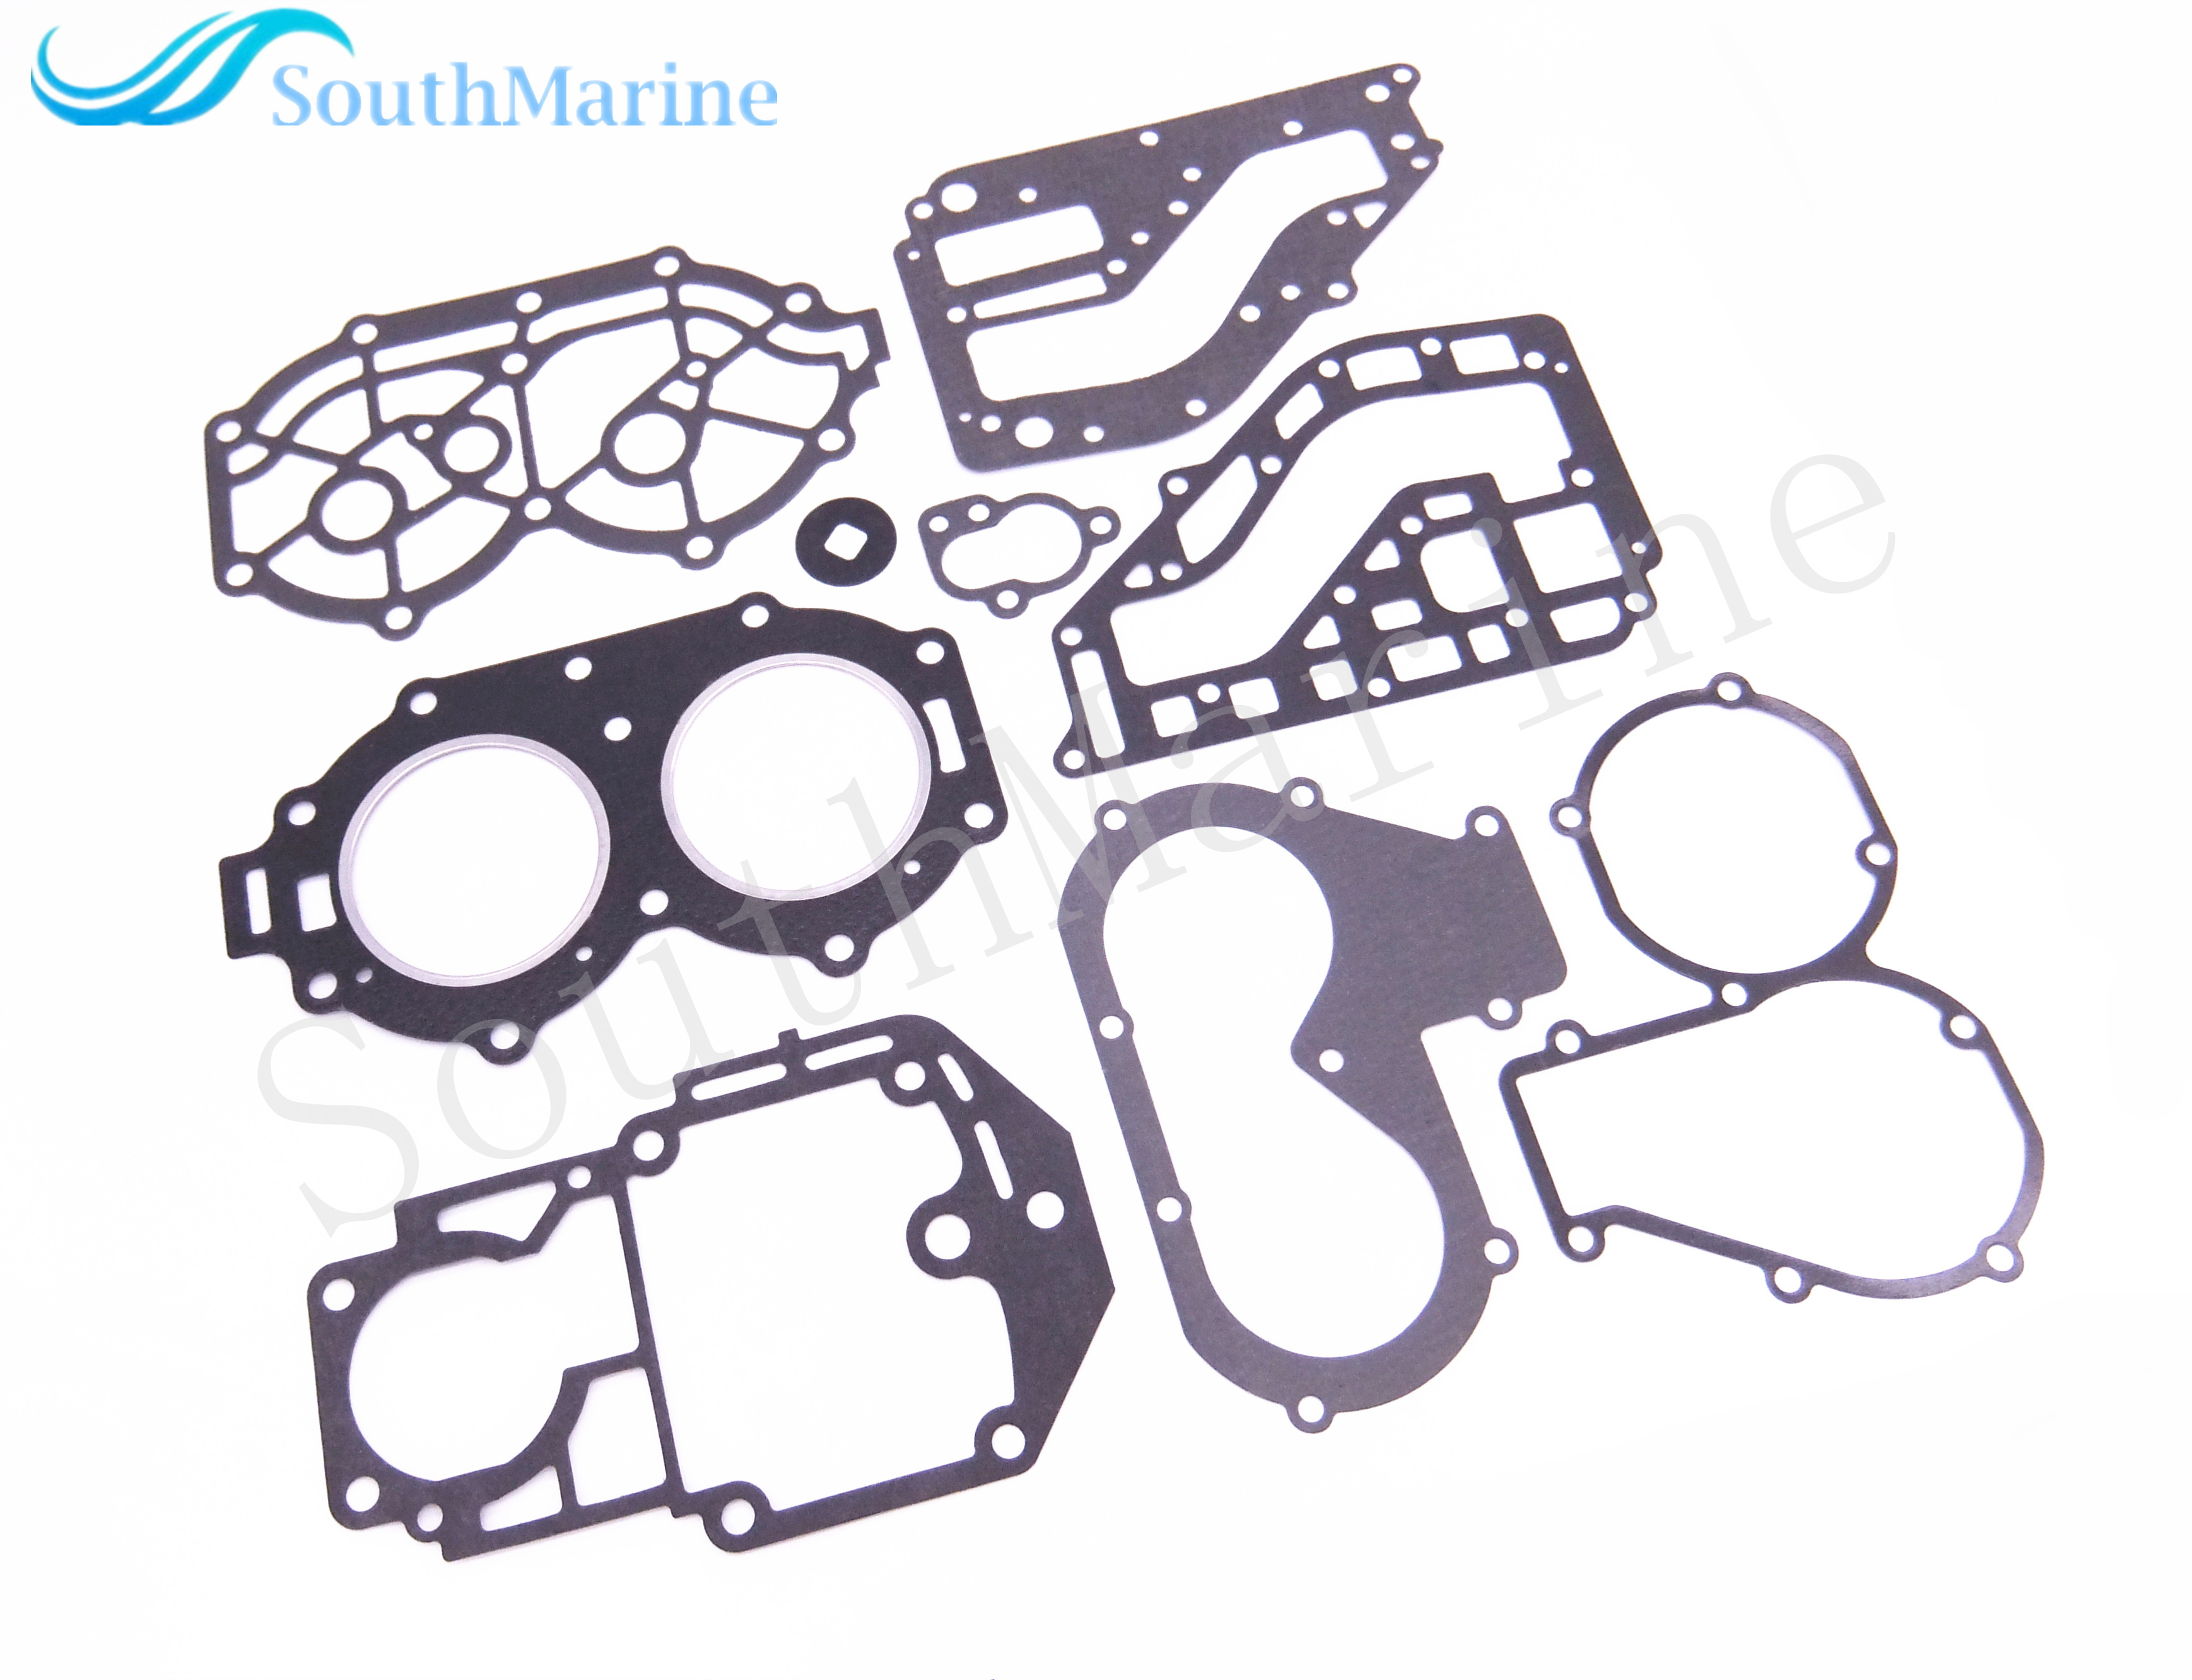 Boat Motor Complete Power Head Seal Gasket Kit for Yamaha 25HP 30HP Outboard Engine removable 3d stereo dolphin leaping out the sea design wall stickers